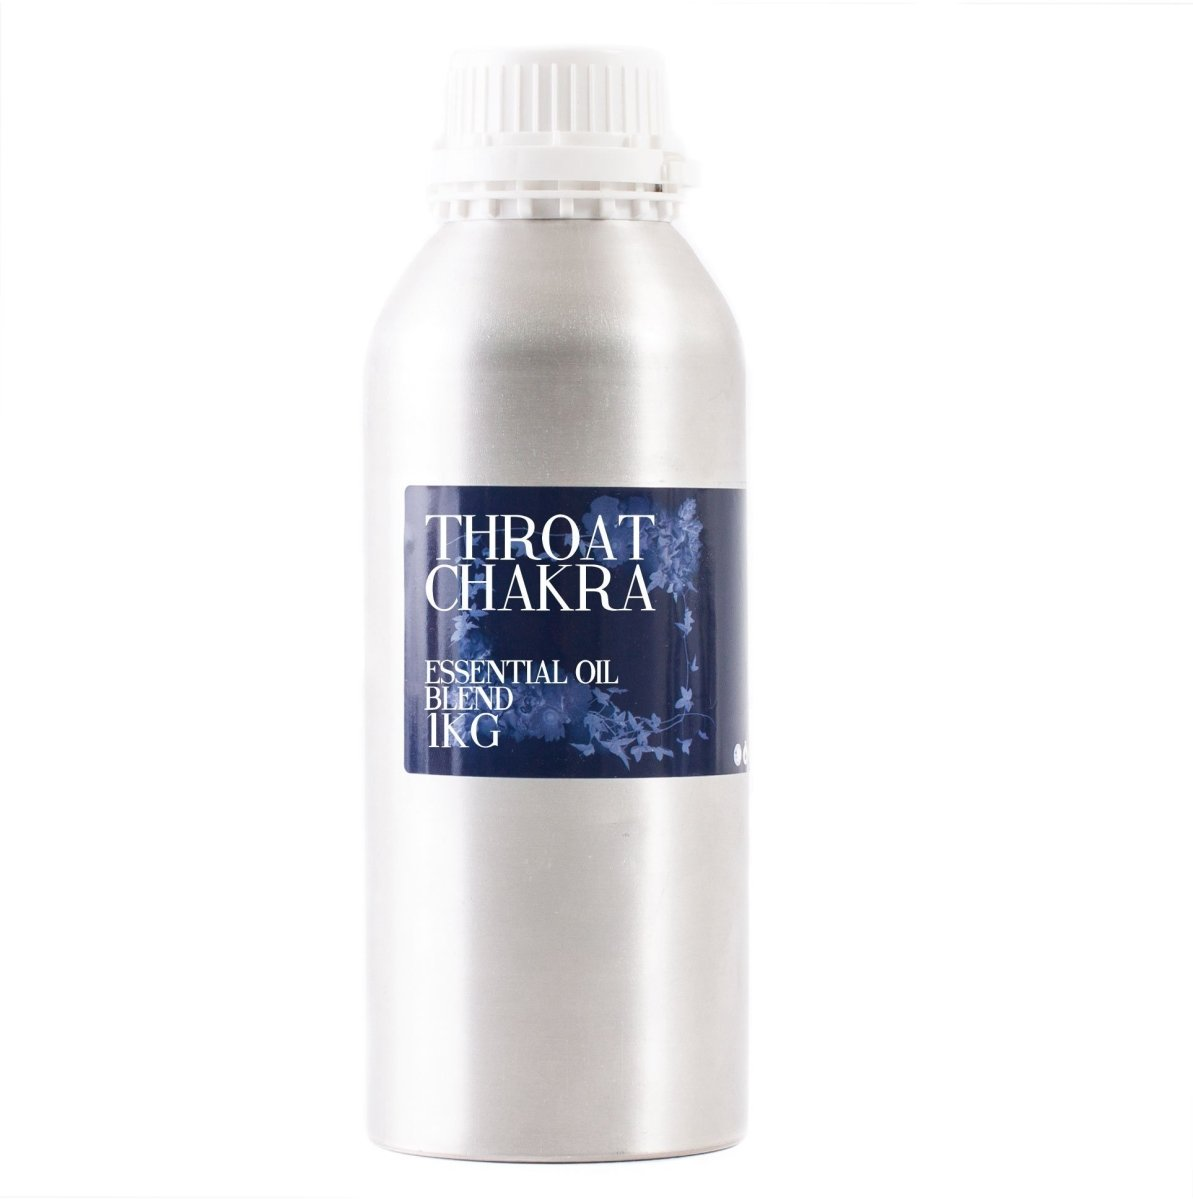 Throat Chakra | Essential Oil Blend - Mystic Moments UK